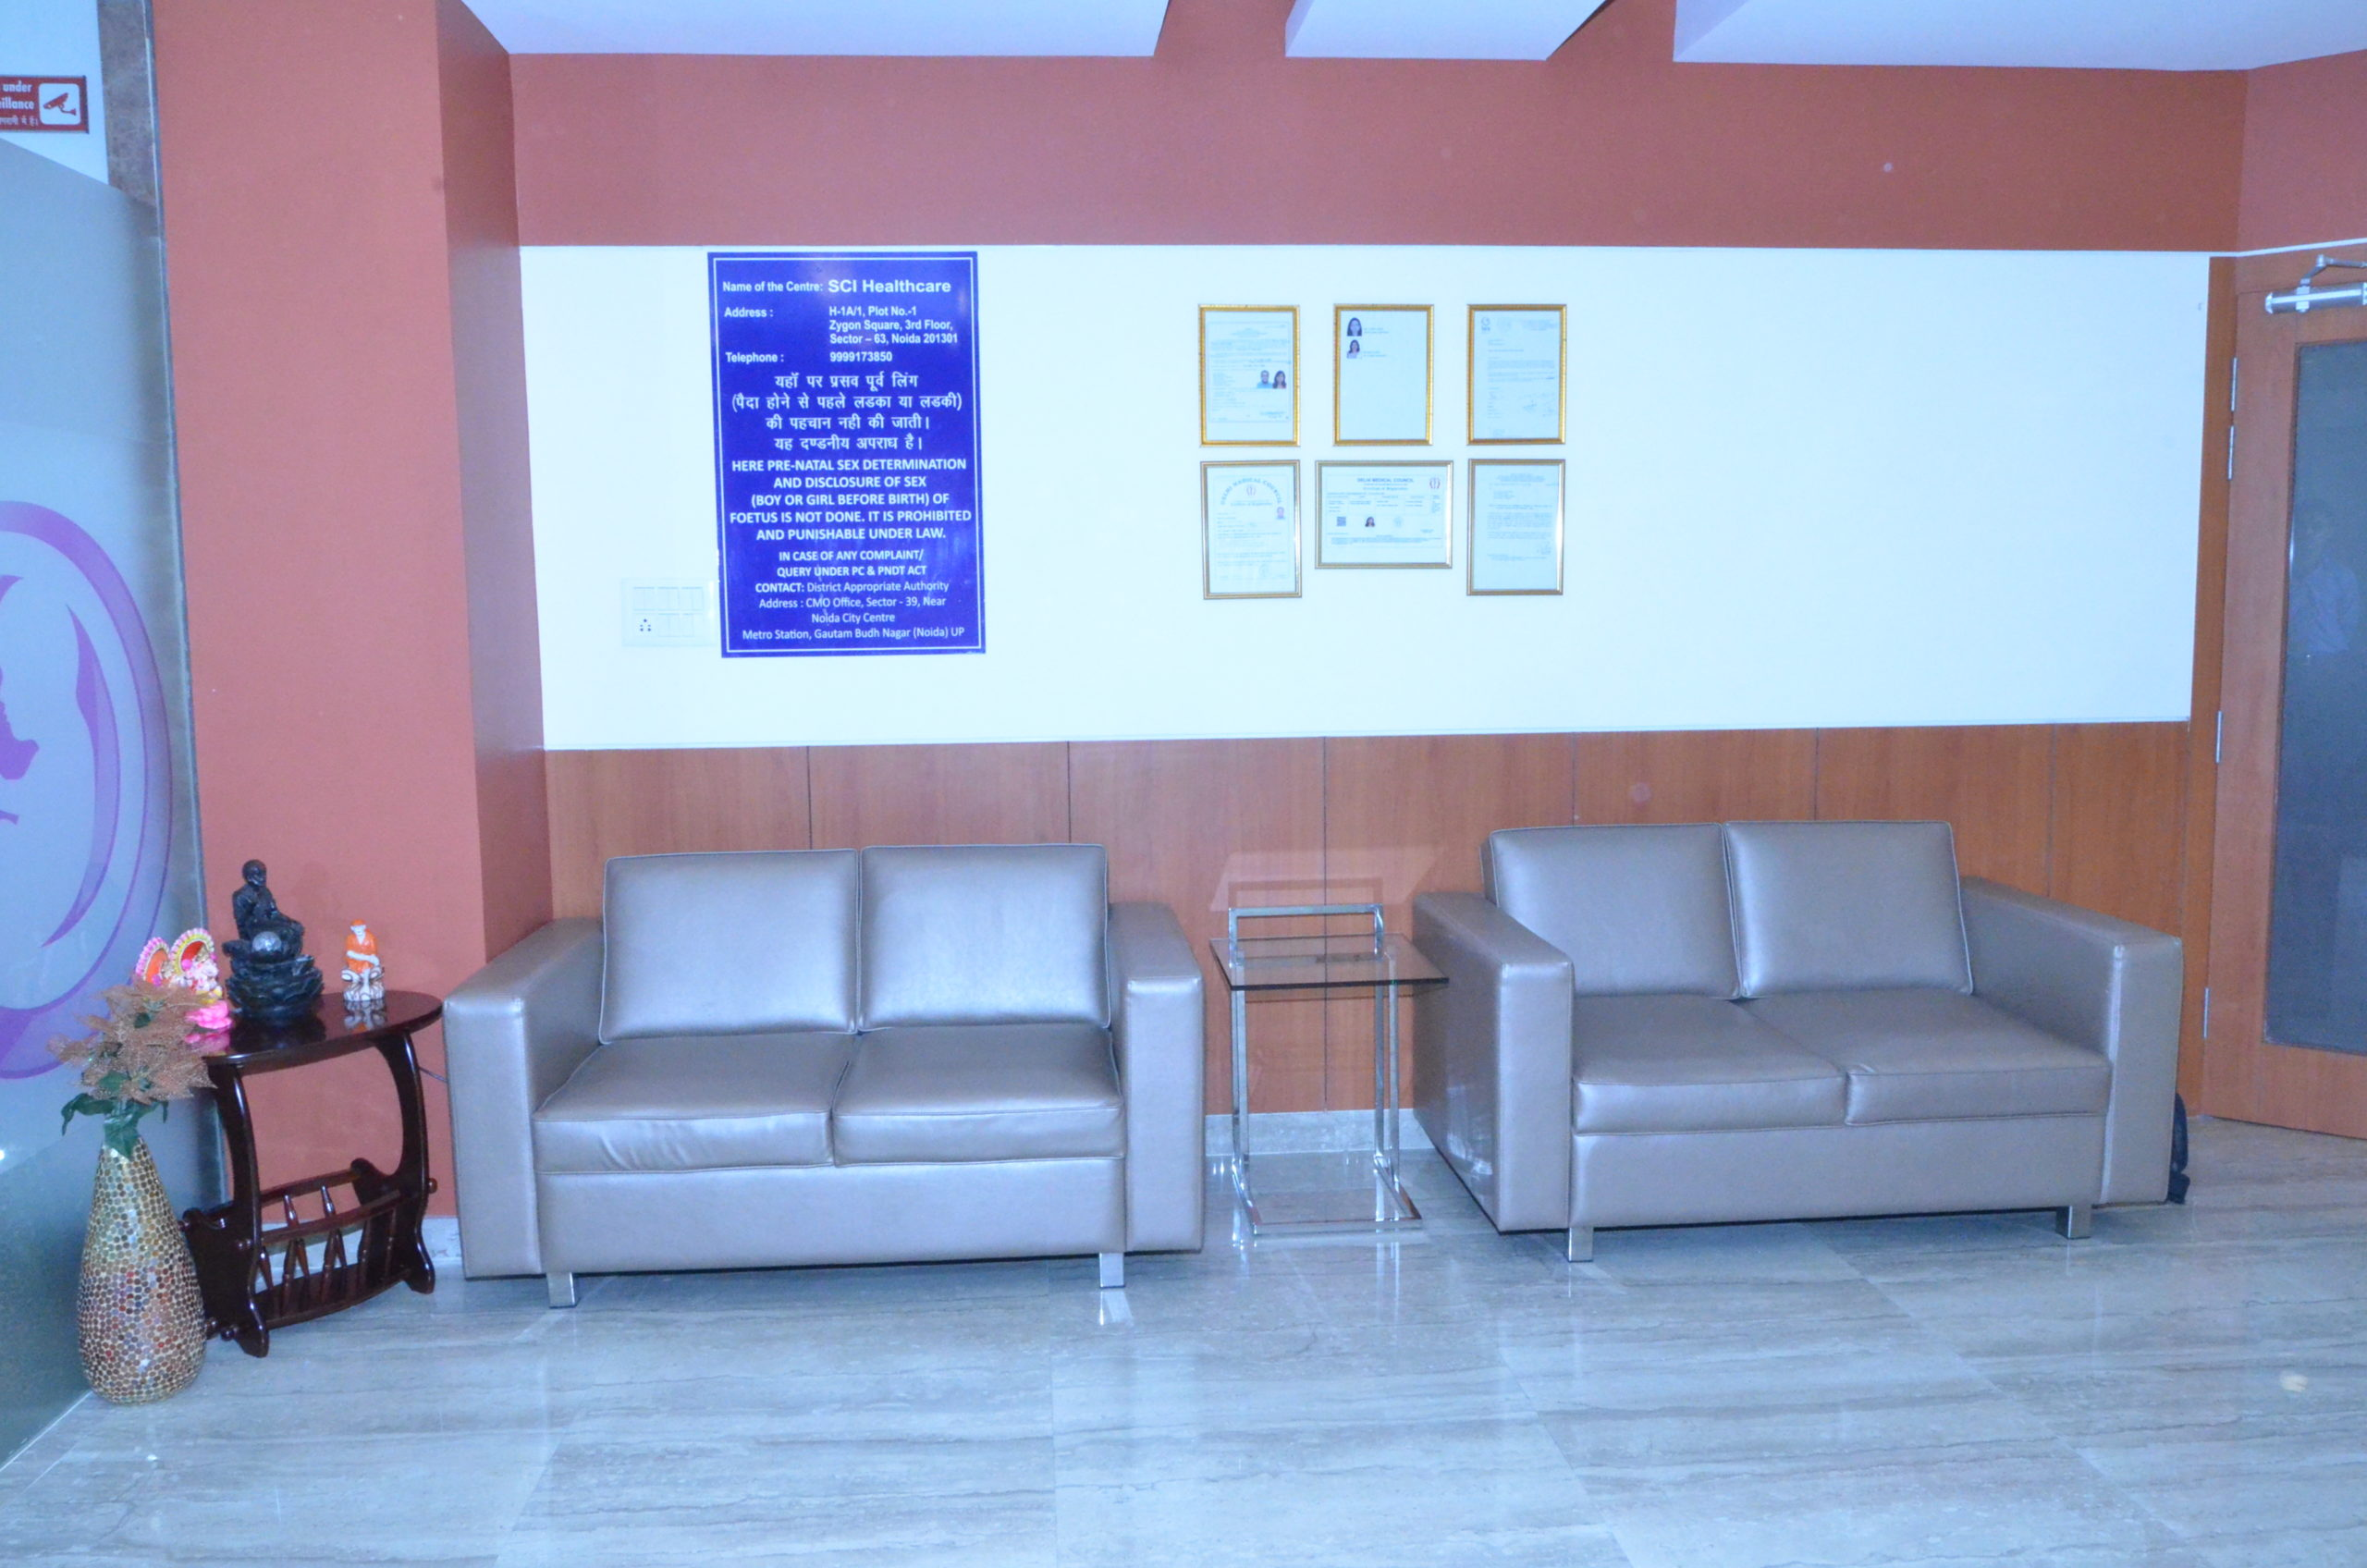 sci ivf centre waiting room